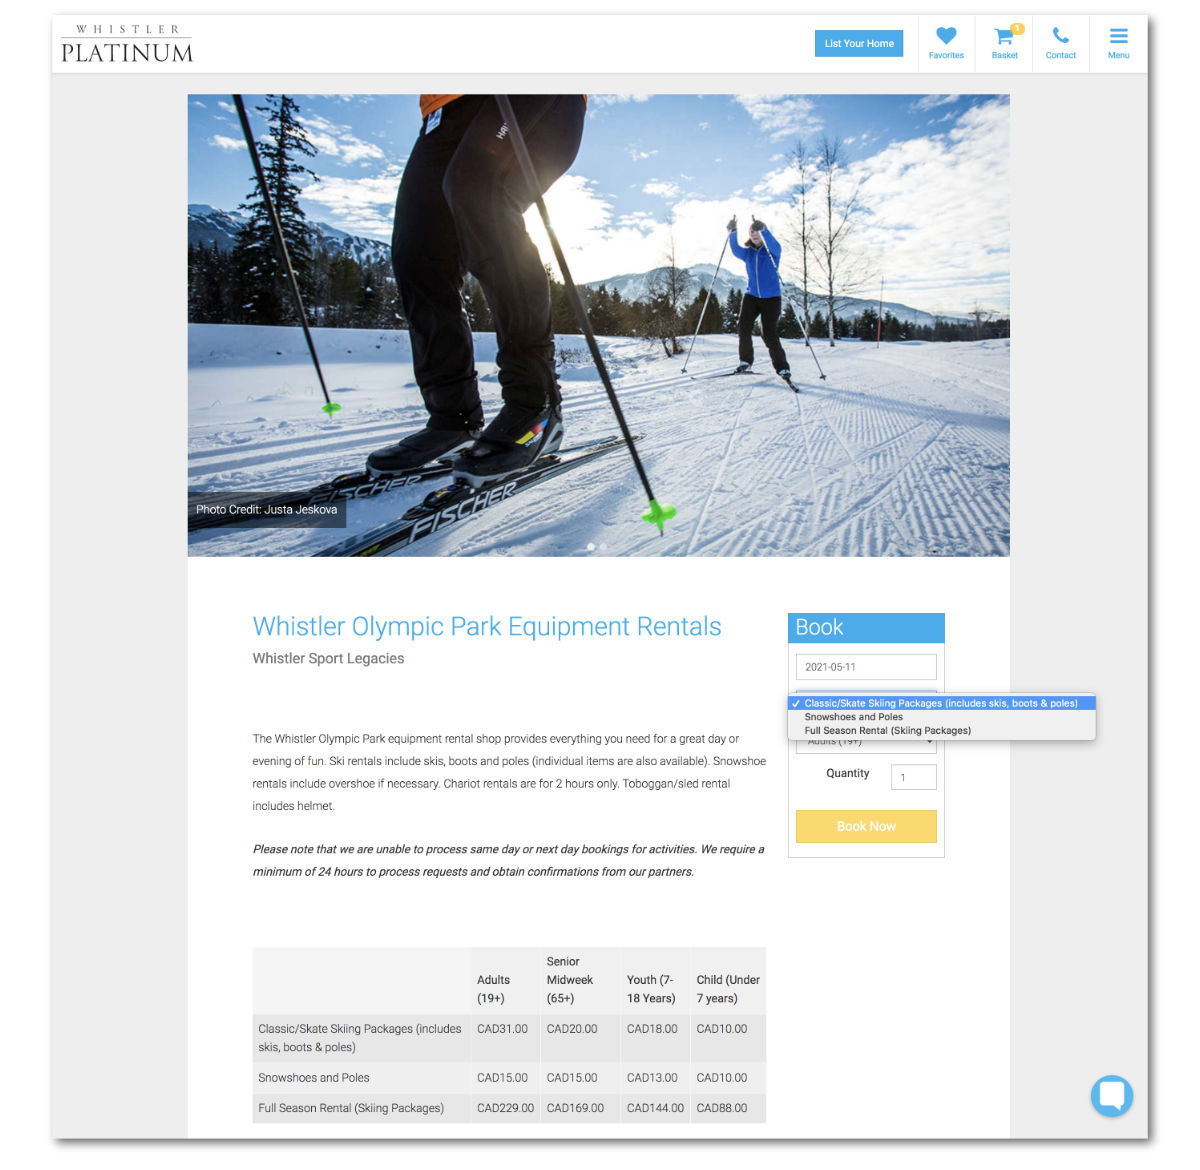 Whistler Platinum Activities, Products and Add-ons - Whistler Olympic Park Equipment Rentals